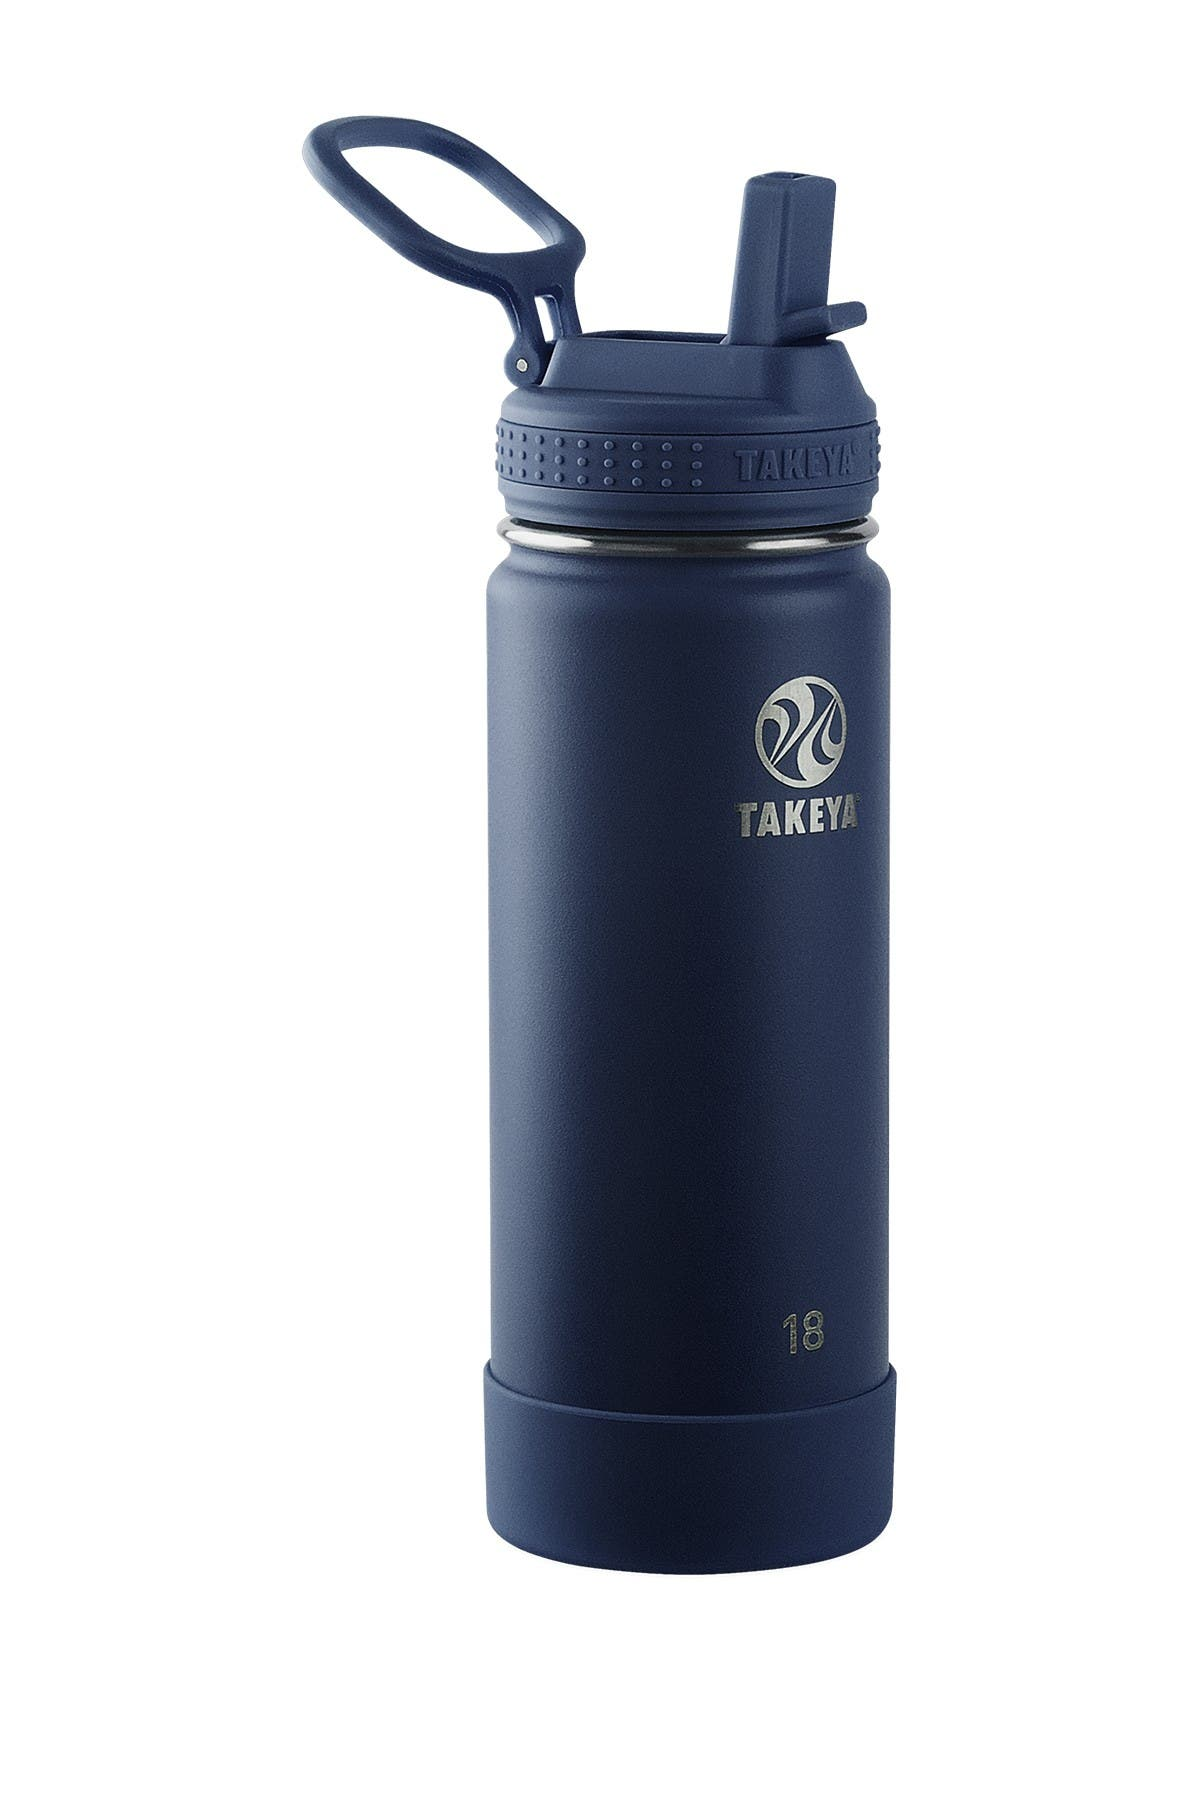 Image of Takeya Actives Insulated 18 oz. Stainless Steel Bottle with Straw Lid - Midnight